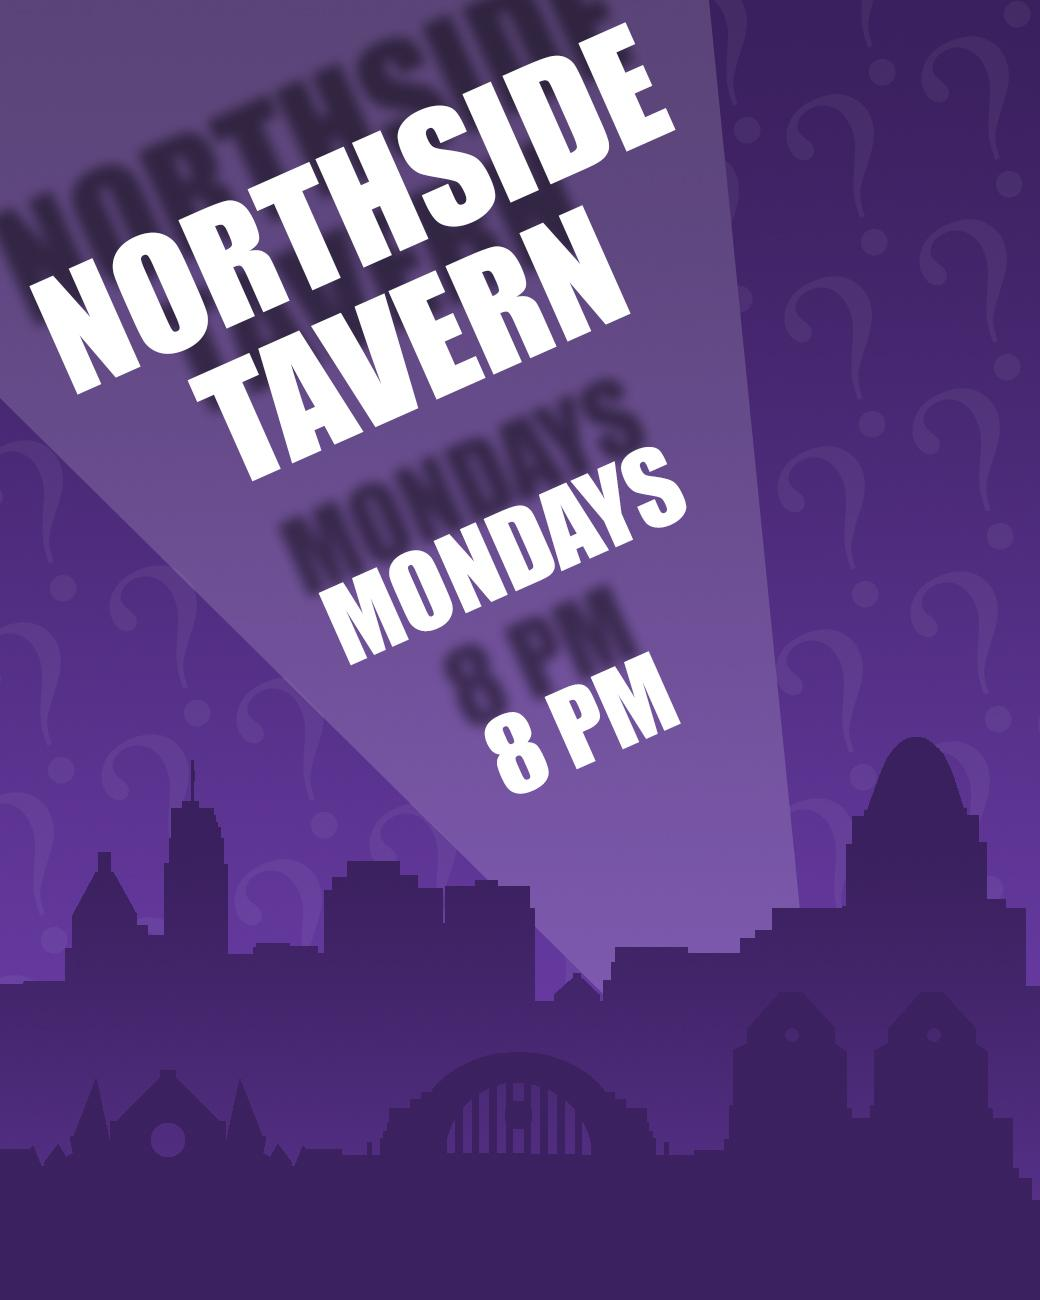 Northside Tavern has trivia every Monday starting at 8 PM. ADDRESS: 4163 Hamilton Ave (45223) / Image: Phil Armstrong, Cincinnati Refined // Published: 8.30.17